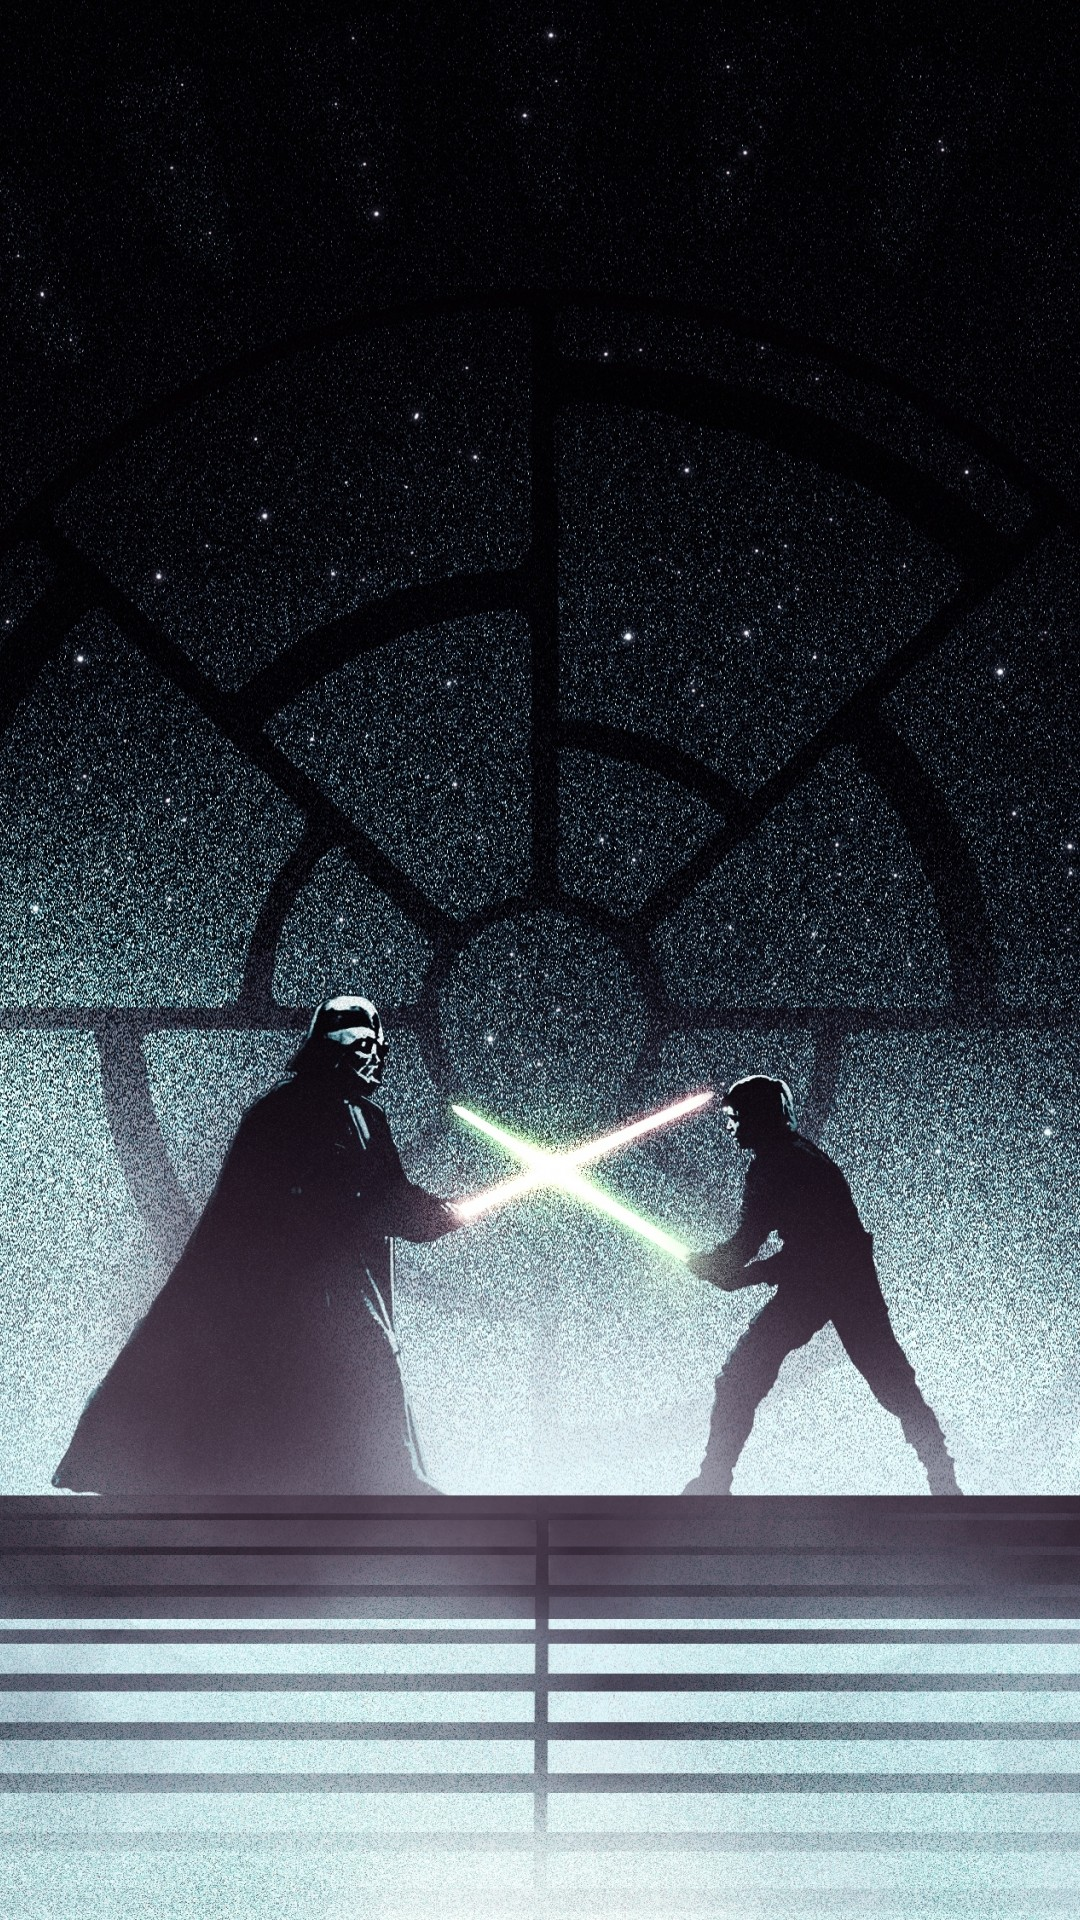 best-star-wars-iphone-wallpapers-hd-pic-mch046200 - dzbc